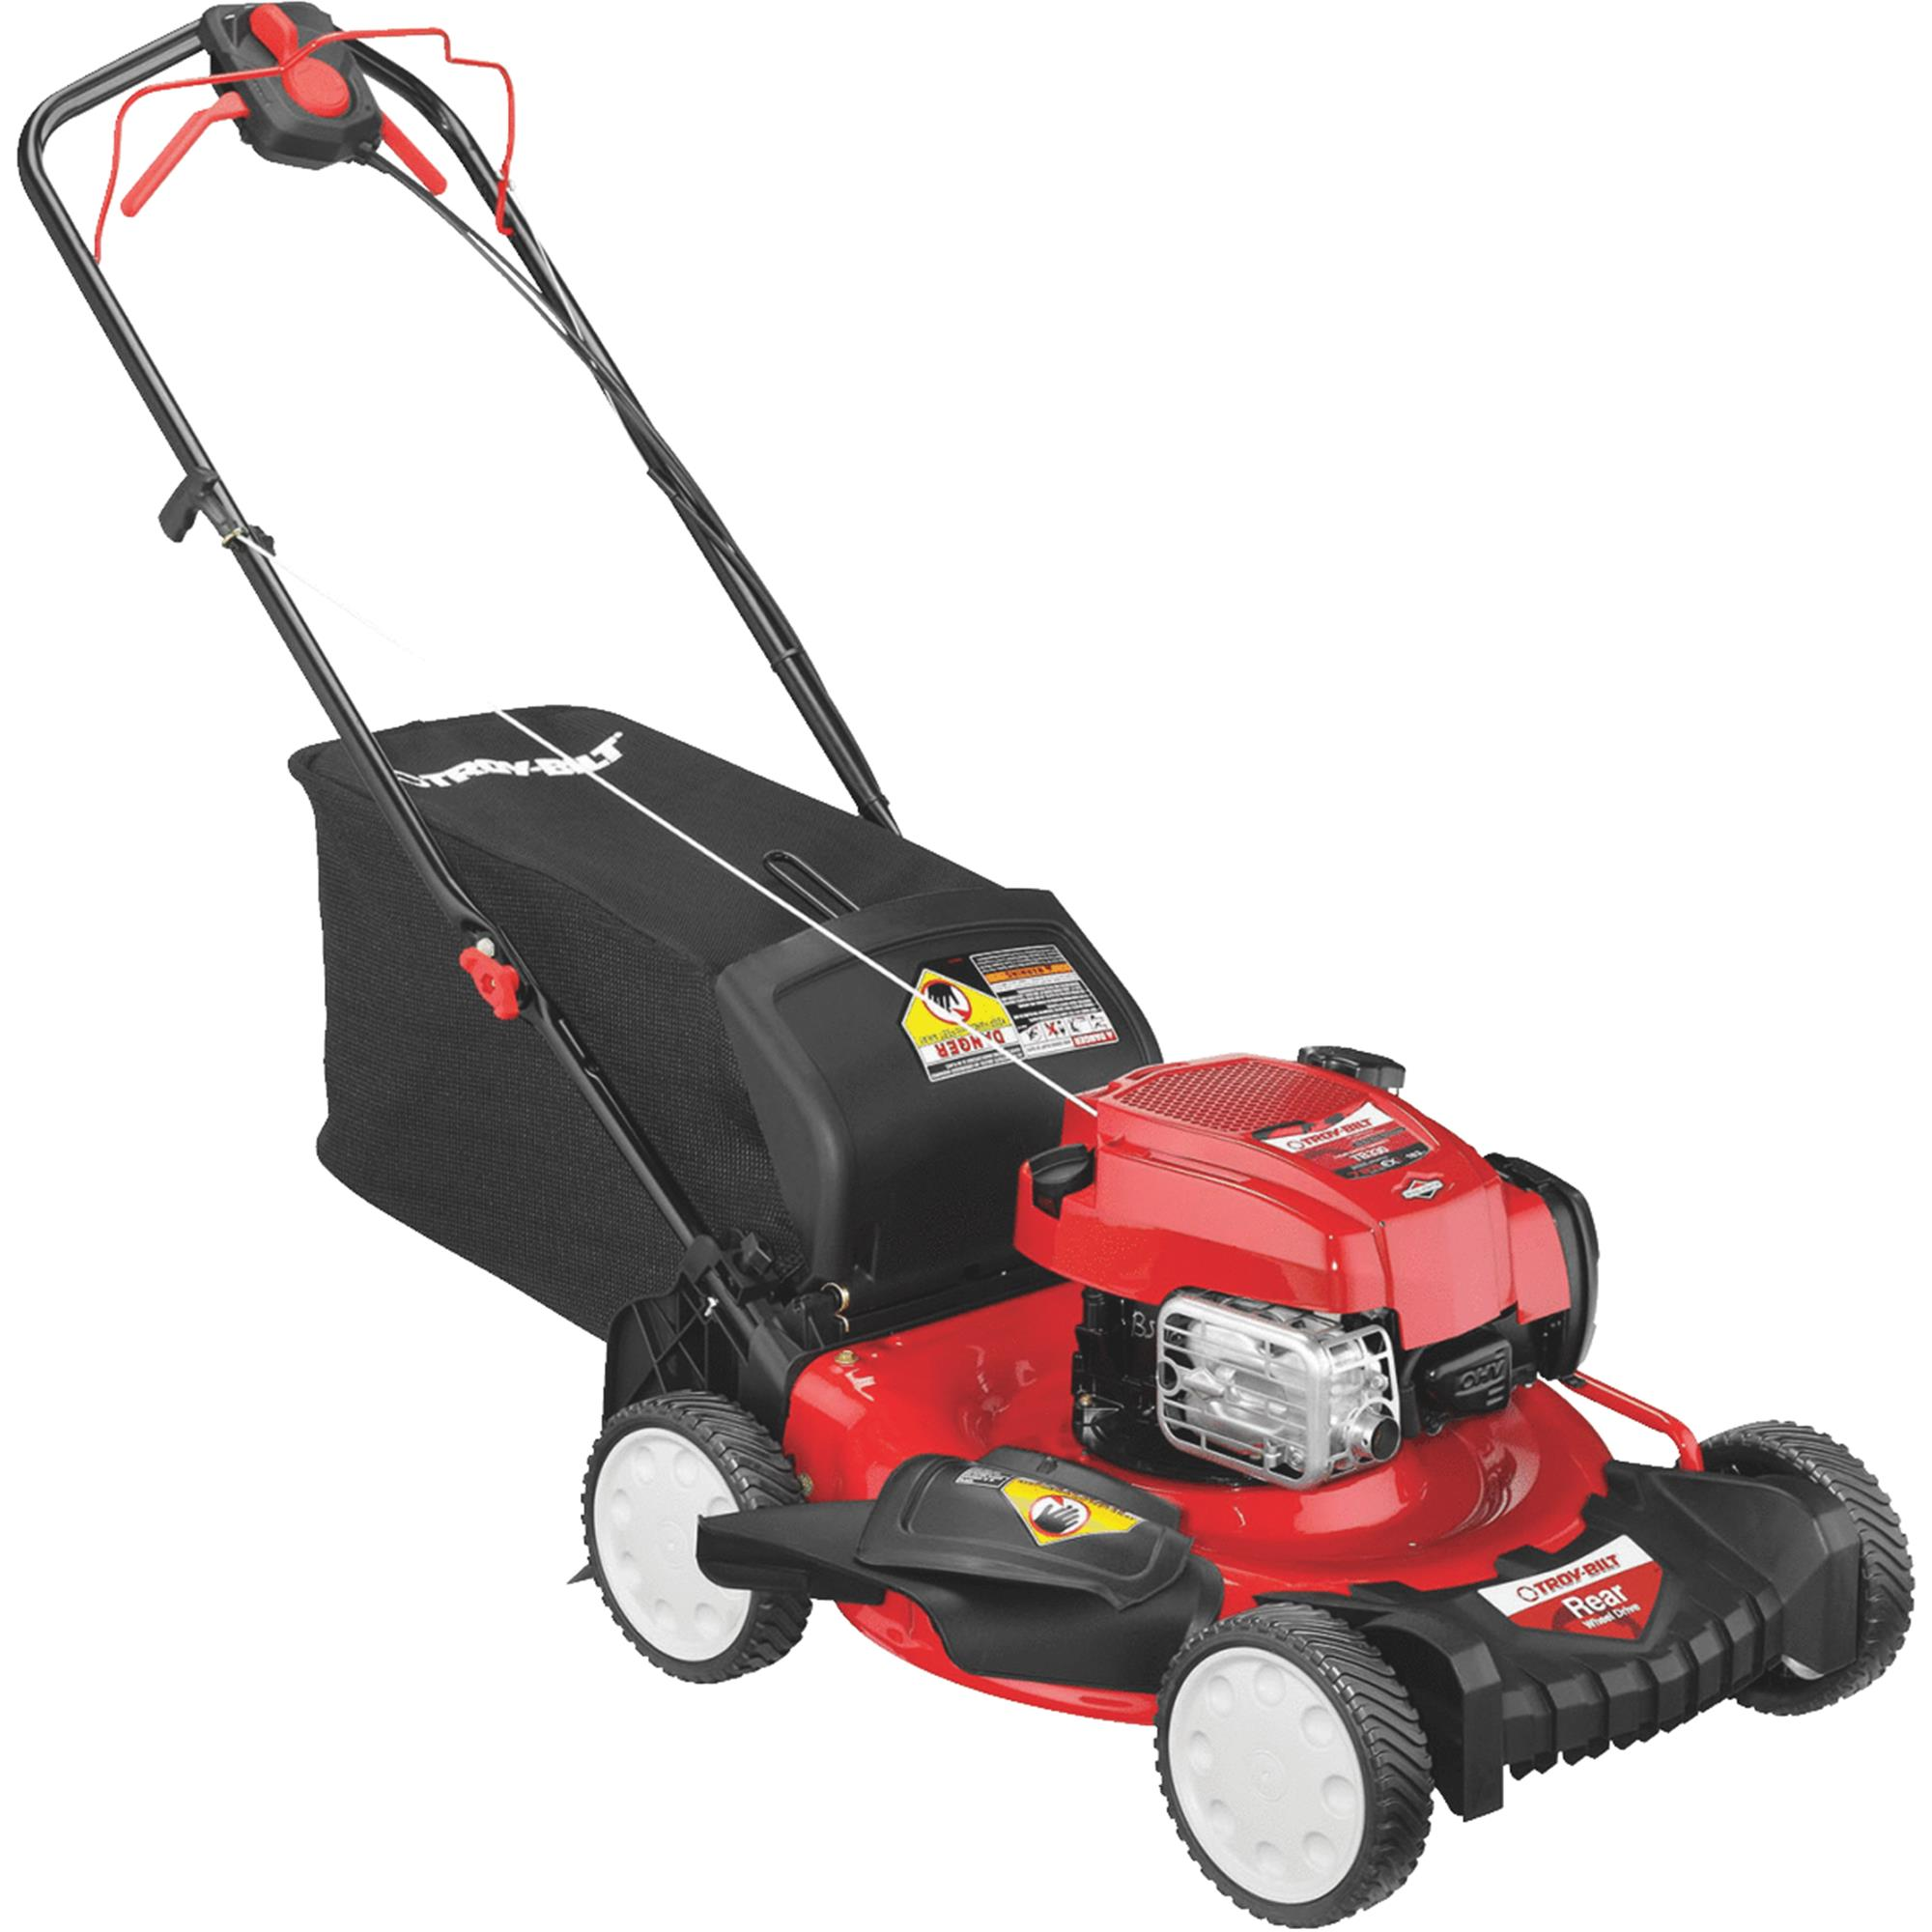 Troy-Bilt TB330 21 In. Rear Wheel Drive Self-Propelled Gas Lawn Mower by MTD PRODUCTS, INC